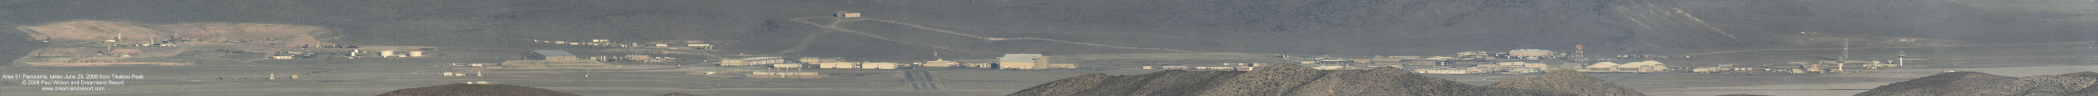 groom lake panorama 0608